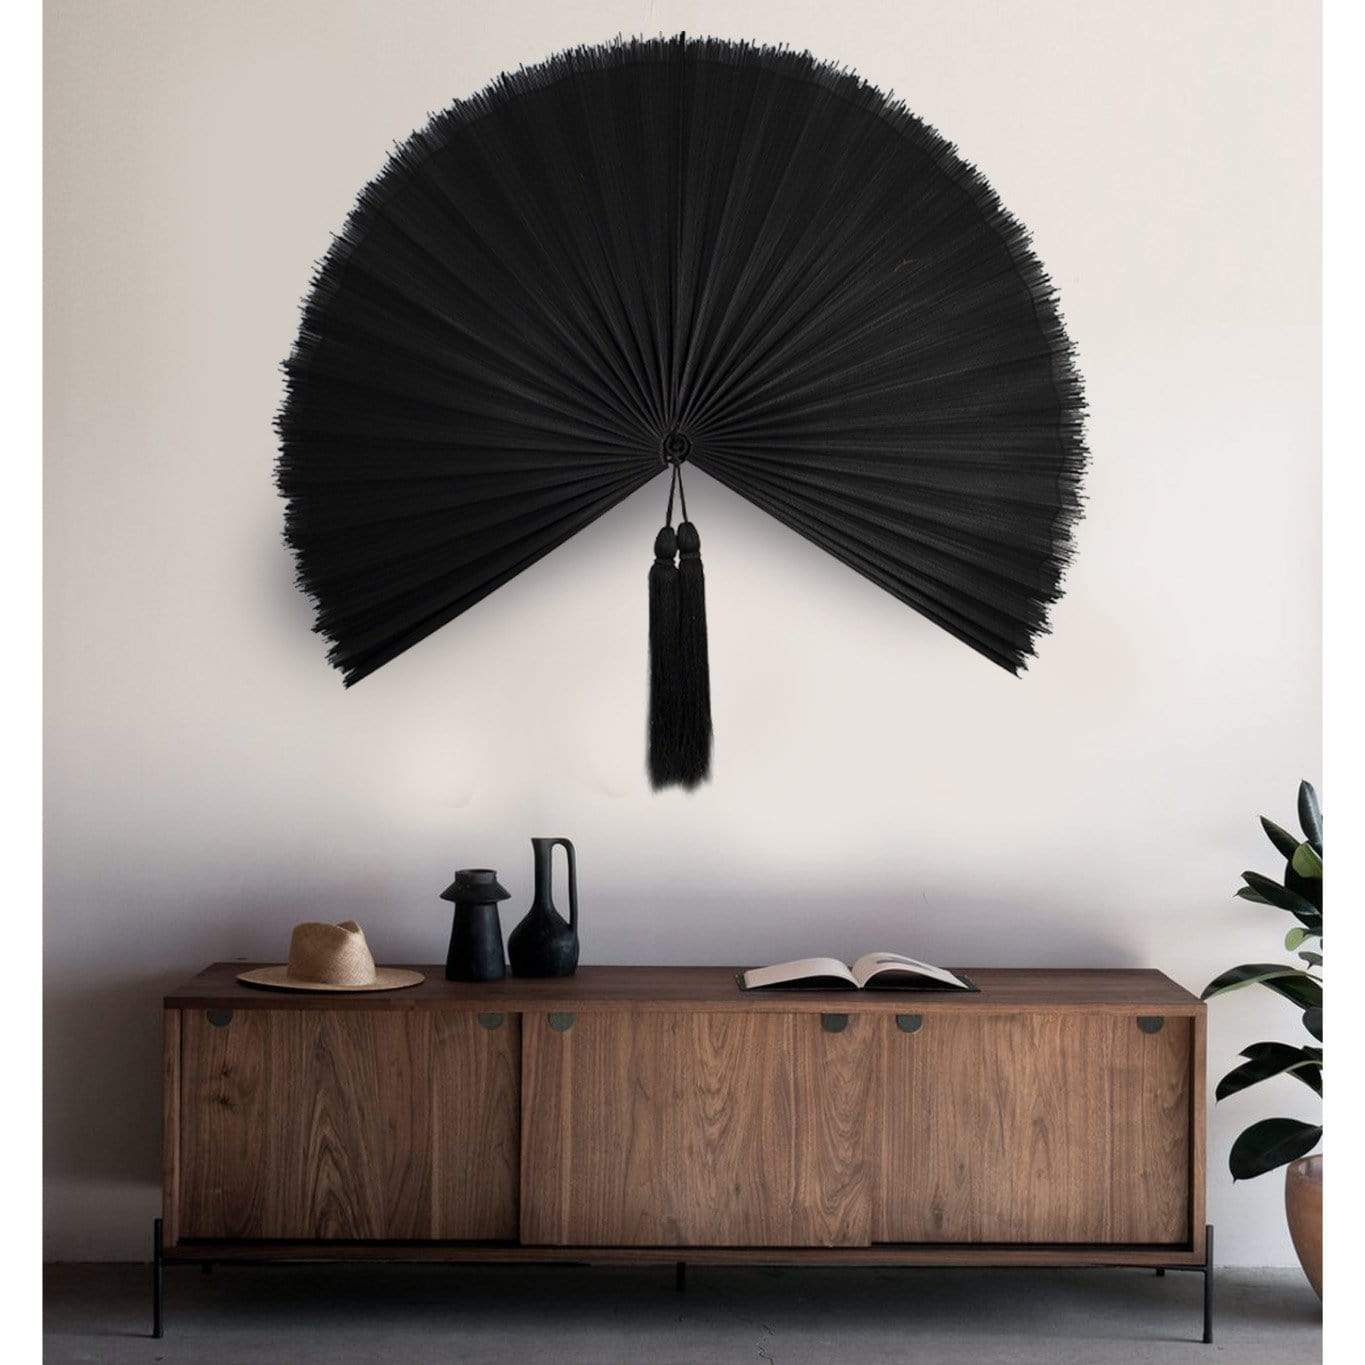 Made Terra Wall Fan Fan Black Giant Folding Wall Hanging Fan | Rustic Boho Woven Wall Pediment | Oriental Charm (Bamboo)